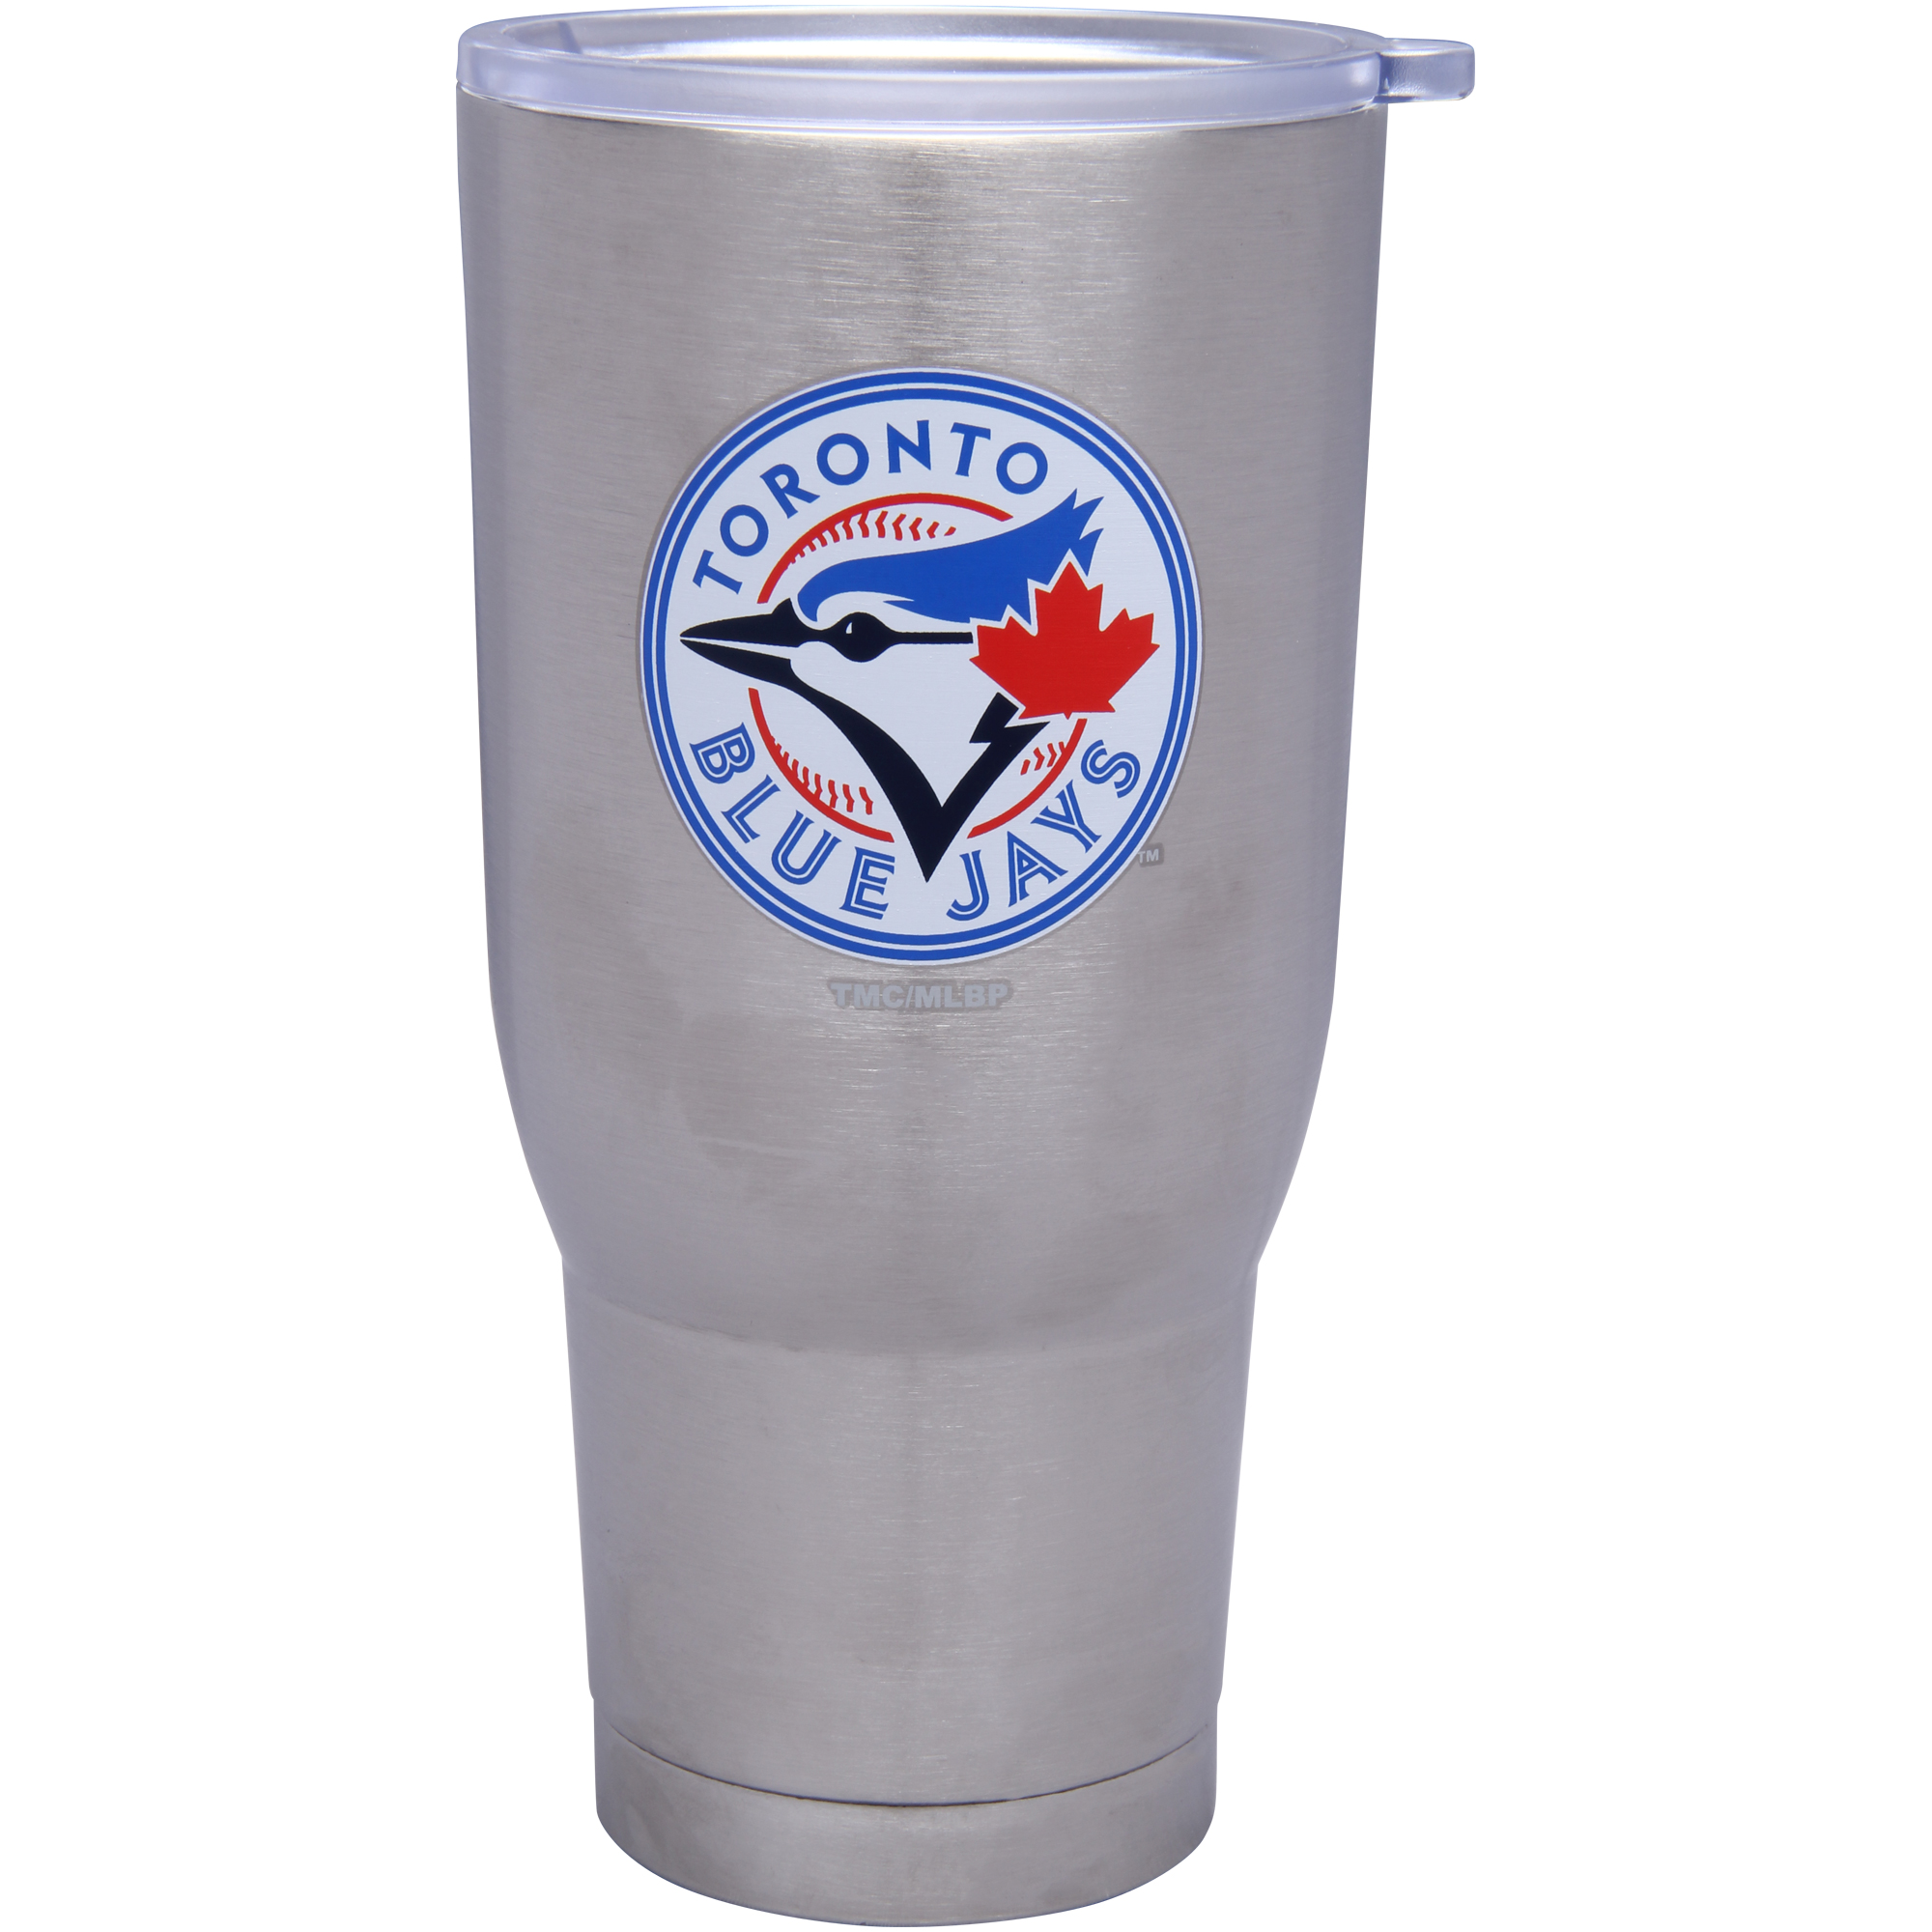 Toronto Blue Jays 32oz. Stainless Steel Keeper Tumbler - No Size